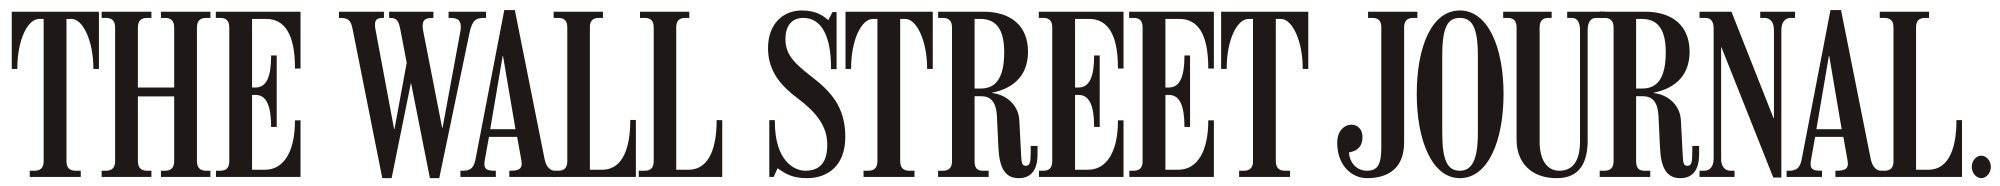 WSJ_Logo Clear.png